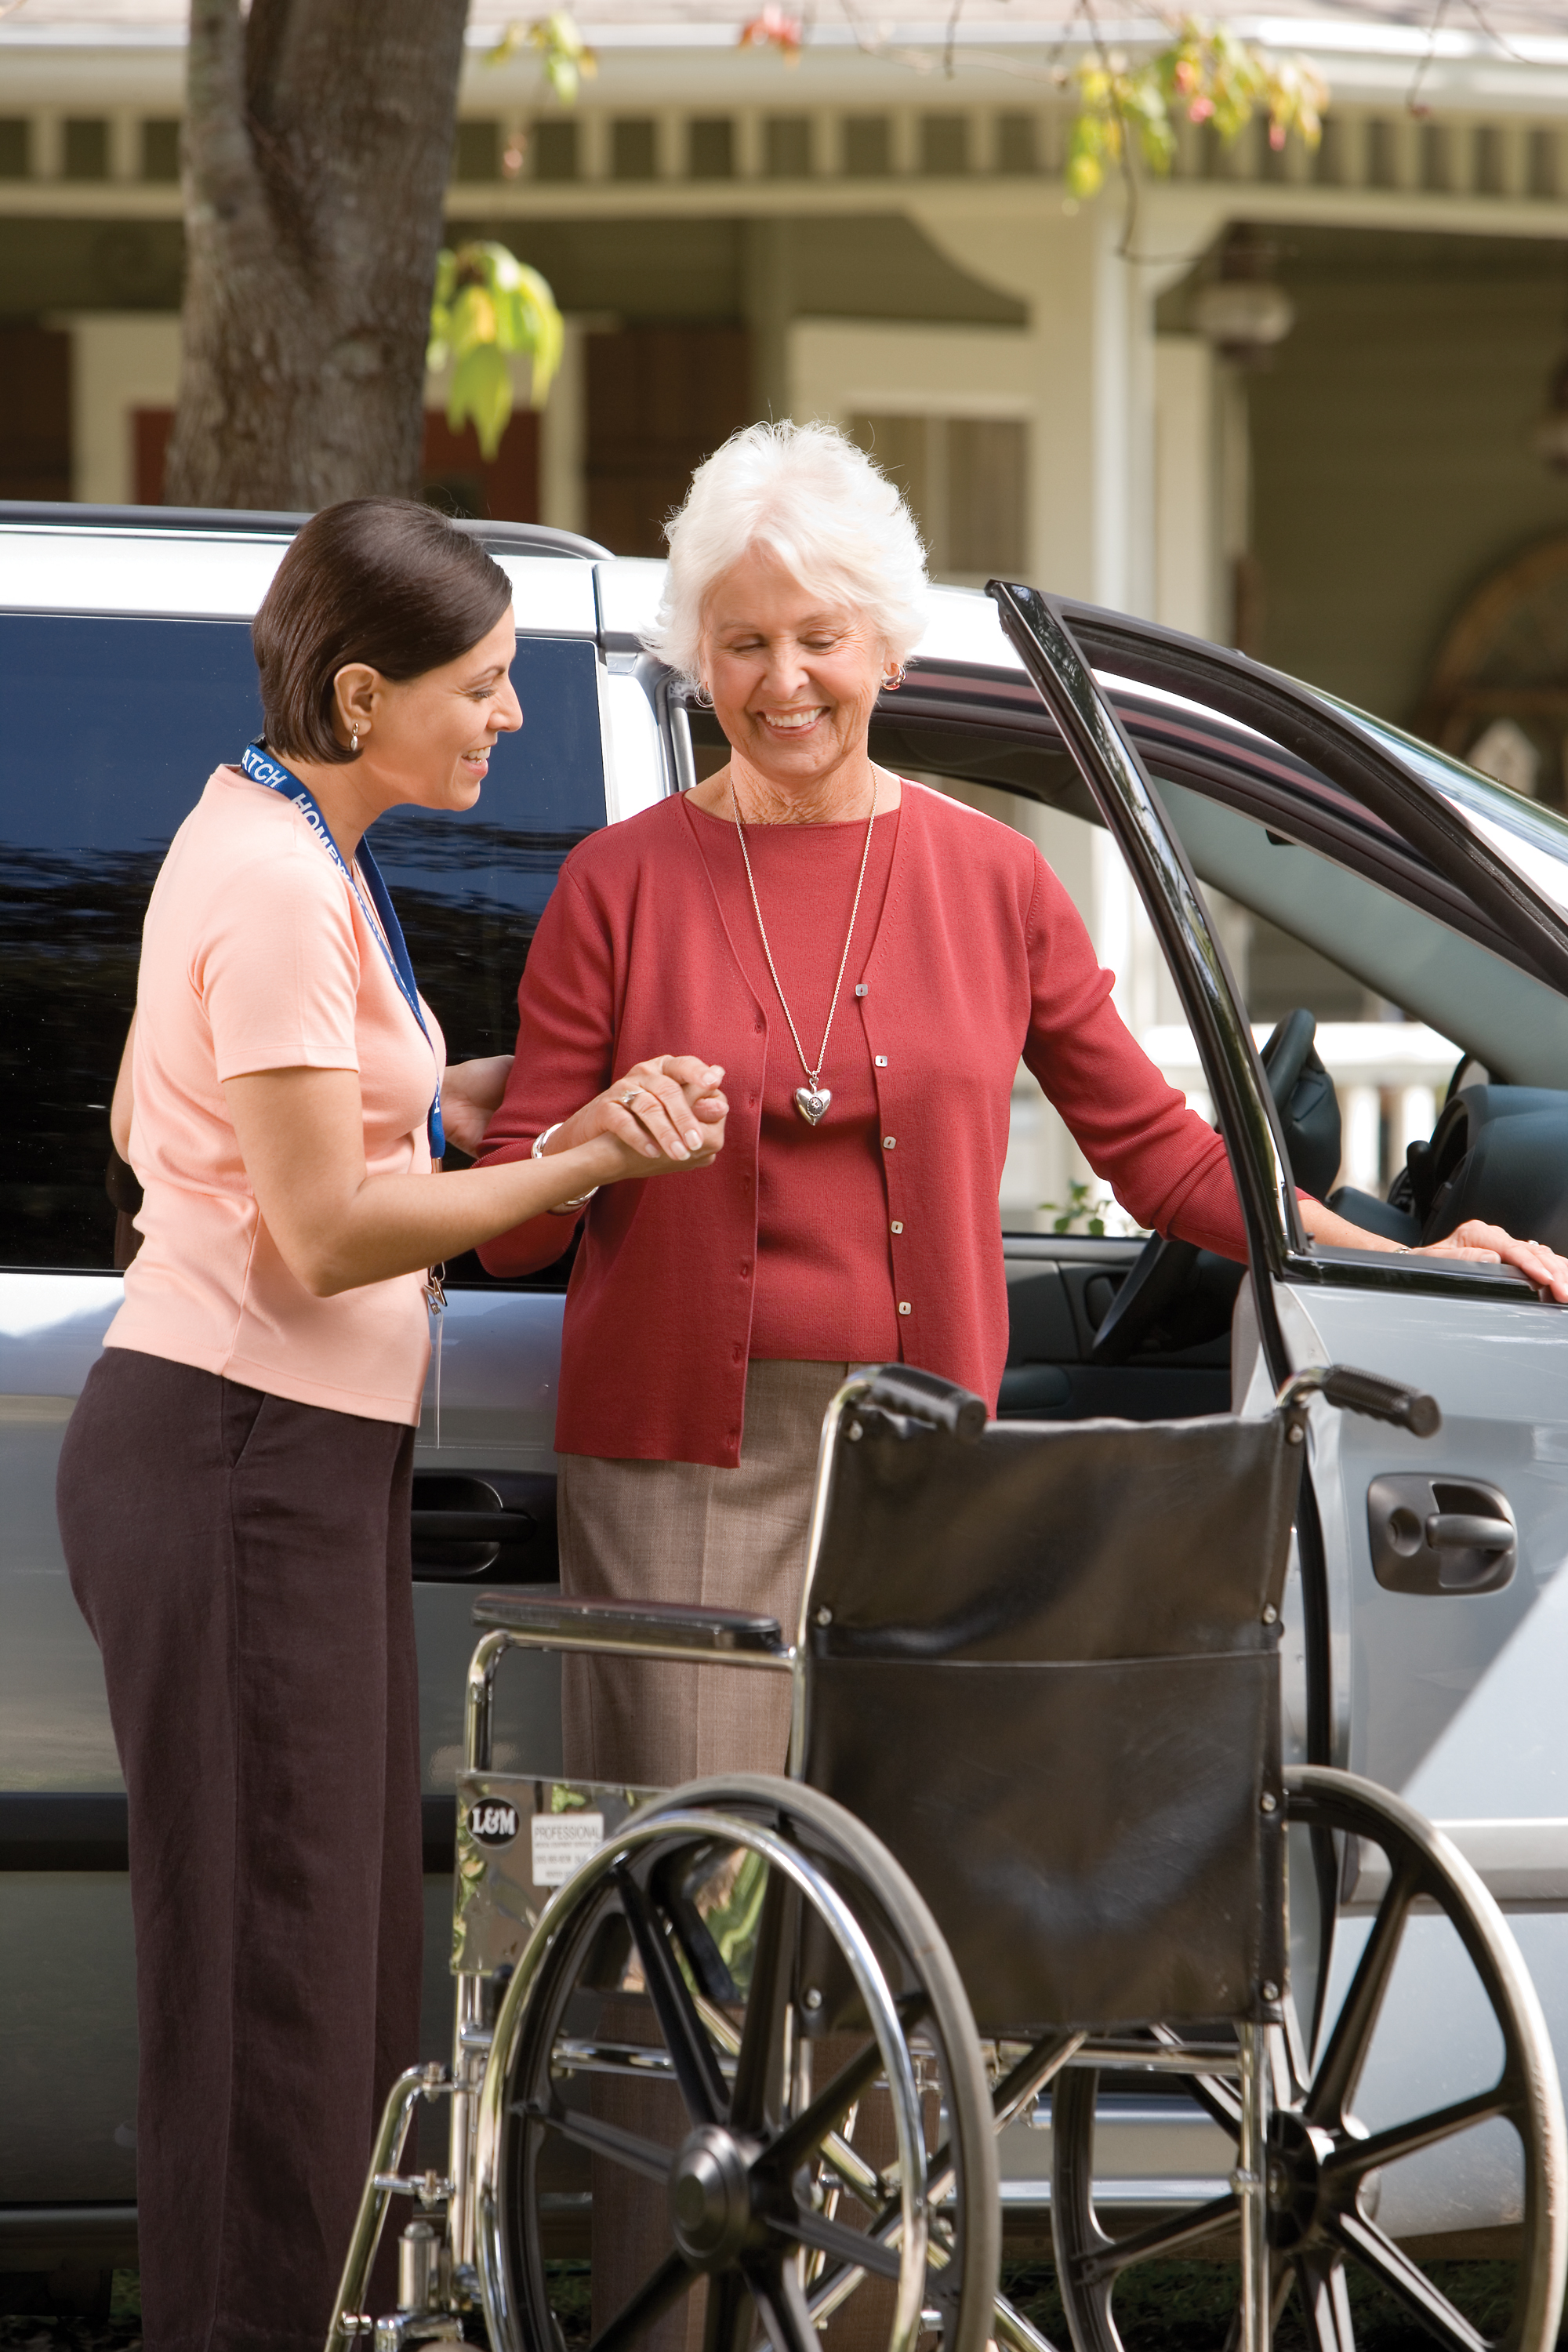 northbrook il home care agency reduces hospital readmissions for seniors